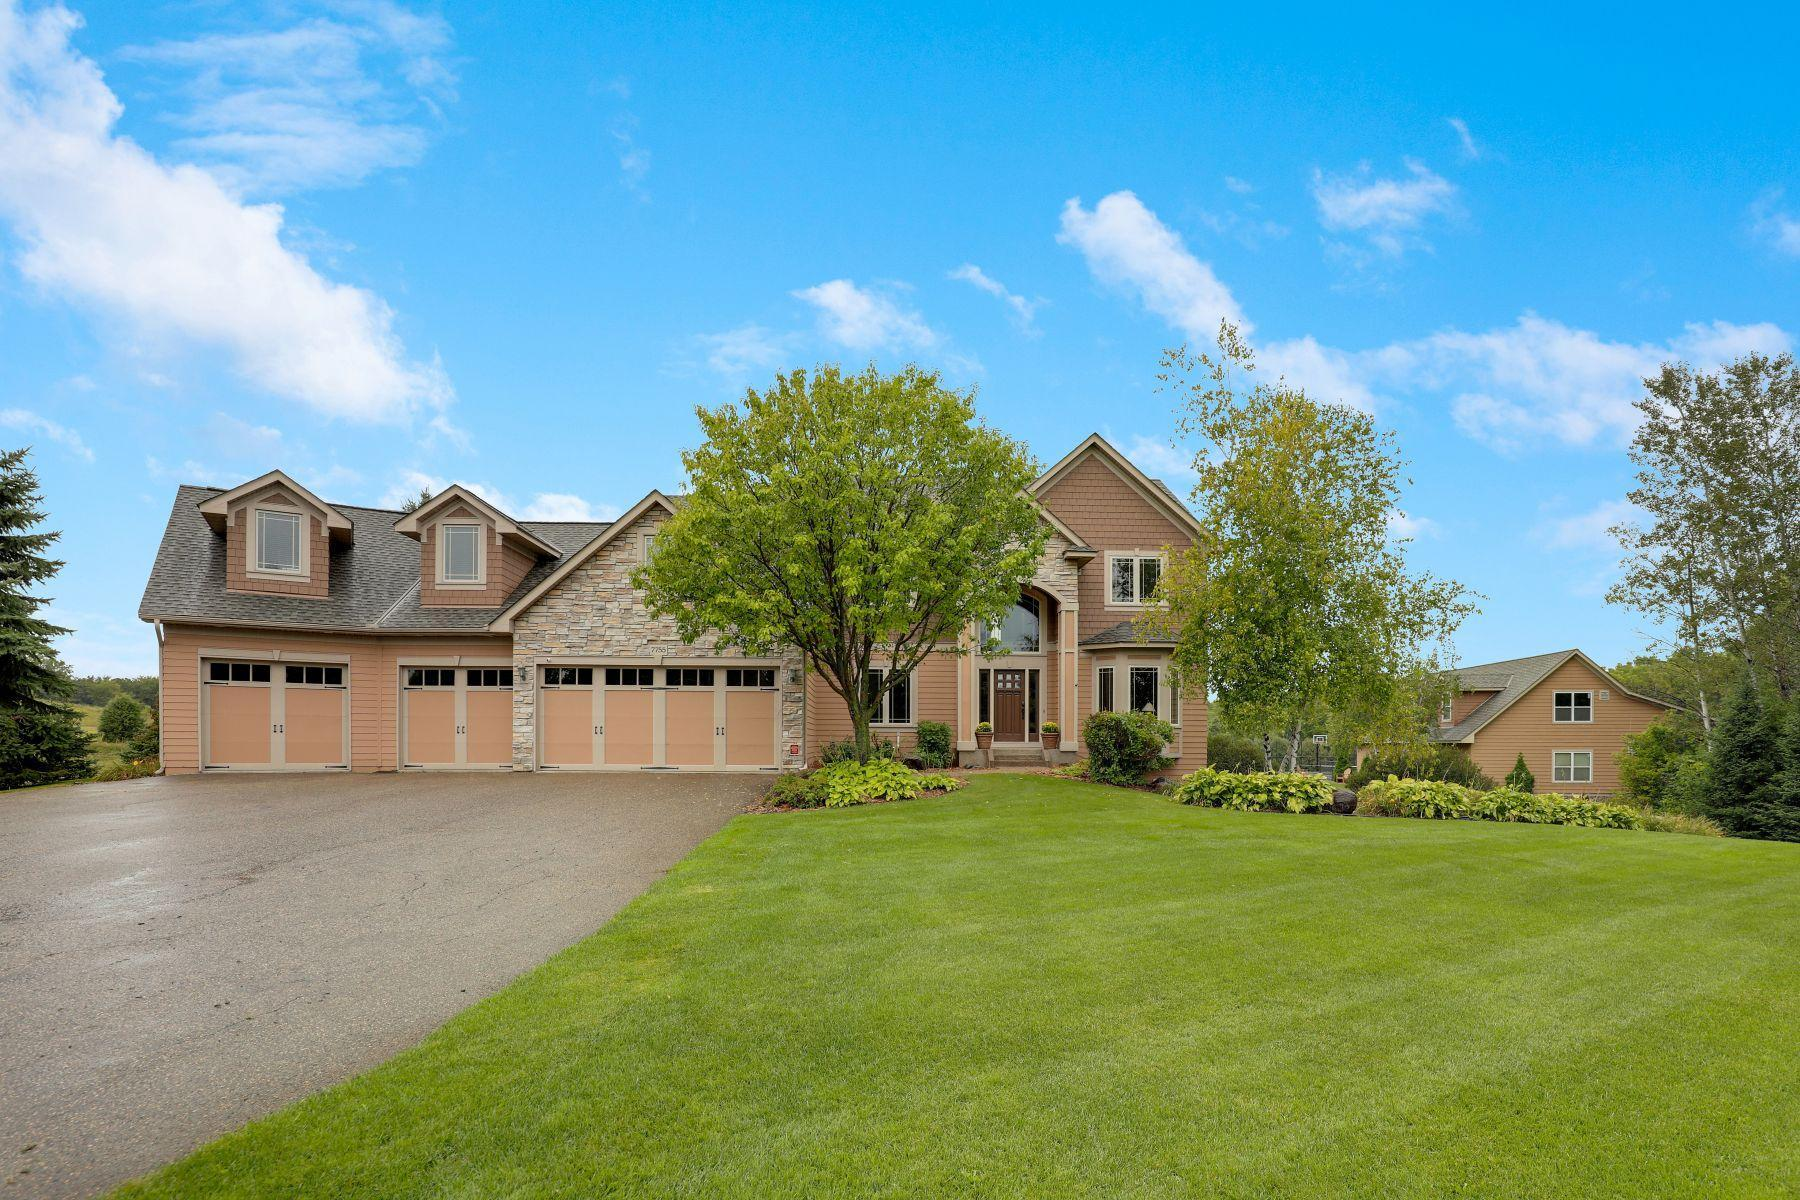 7755 Argenta Trail Property Photo - Inver Grove Heights, MN real estate listing